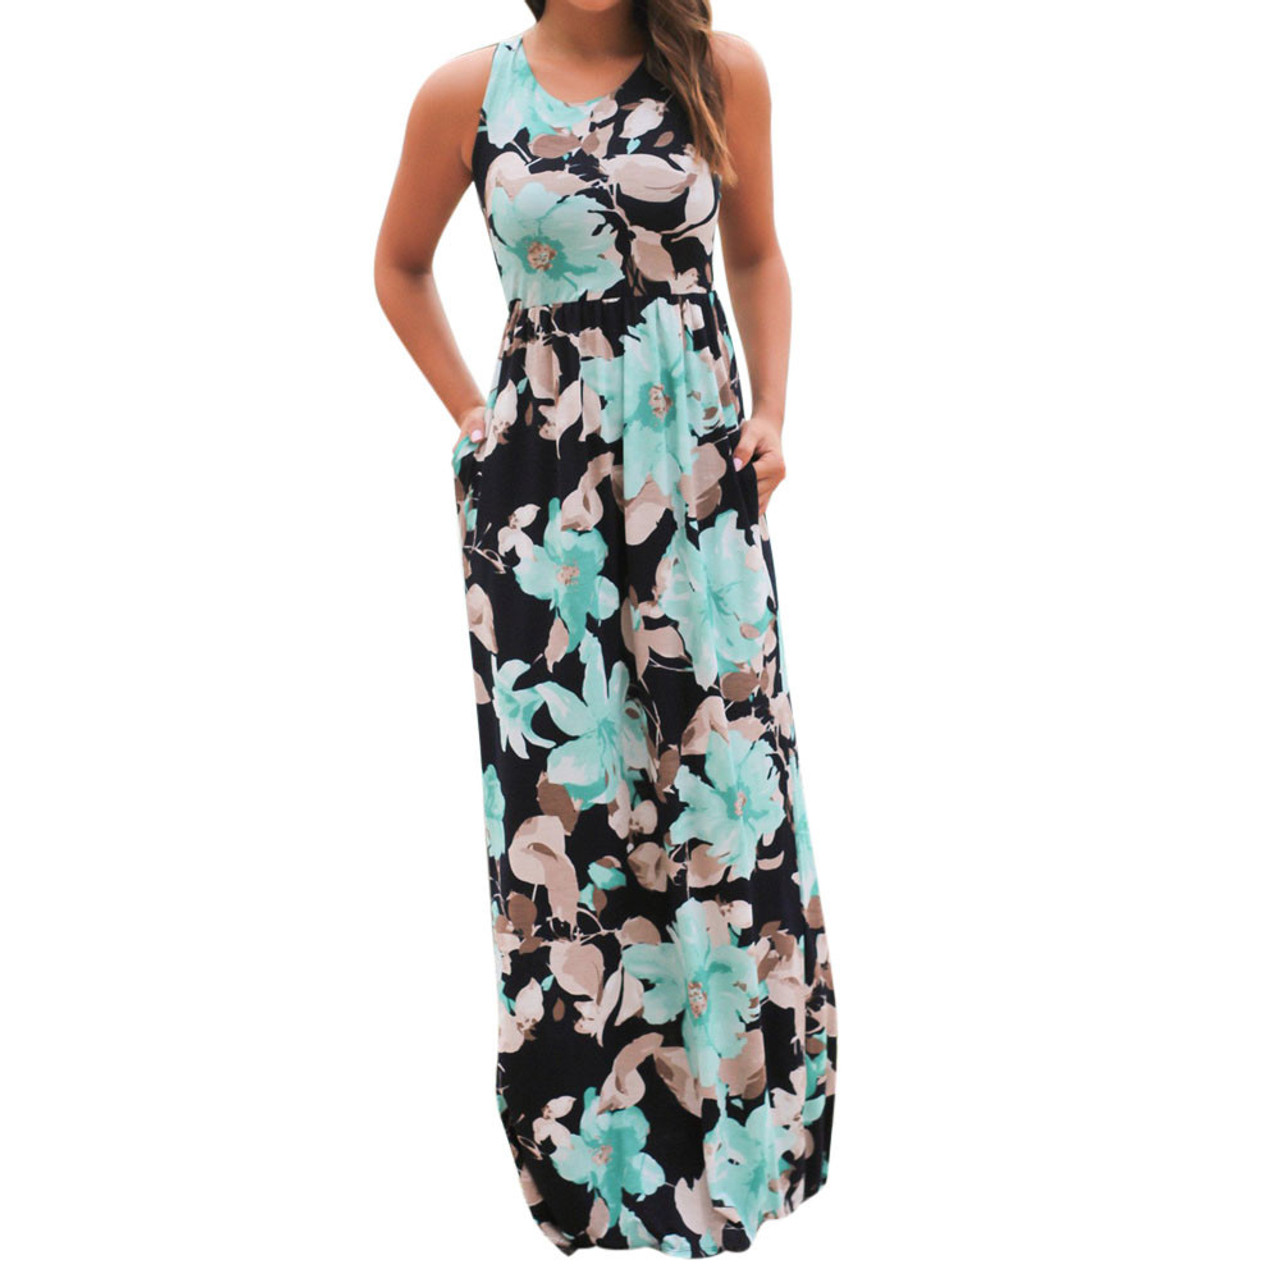 b105014c8c3c Summer Casual Clothing Sexy Womens Sleeveless Beach Long Dress Elegant Ladies  Boho Floral Printed Maxi Party ...